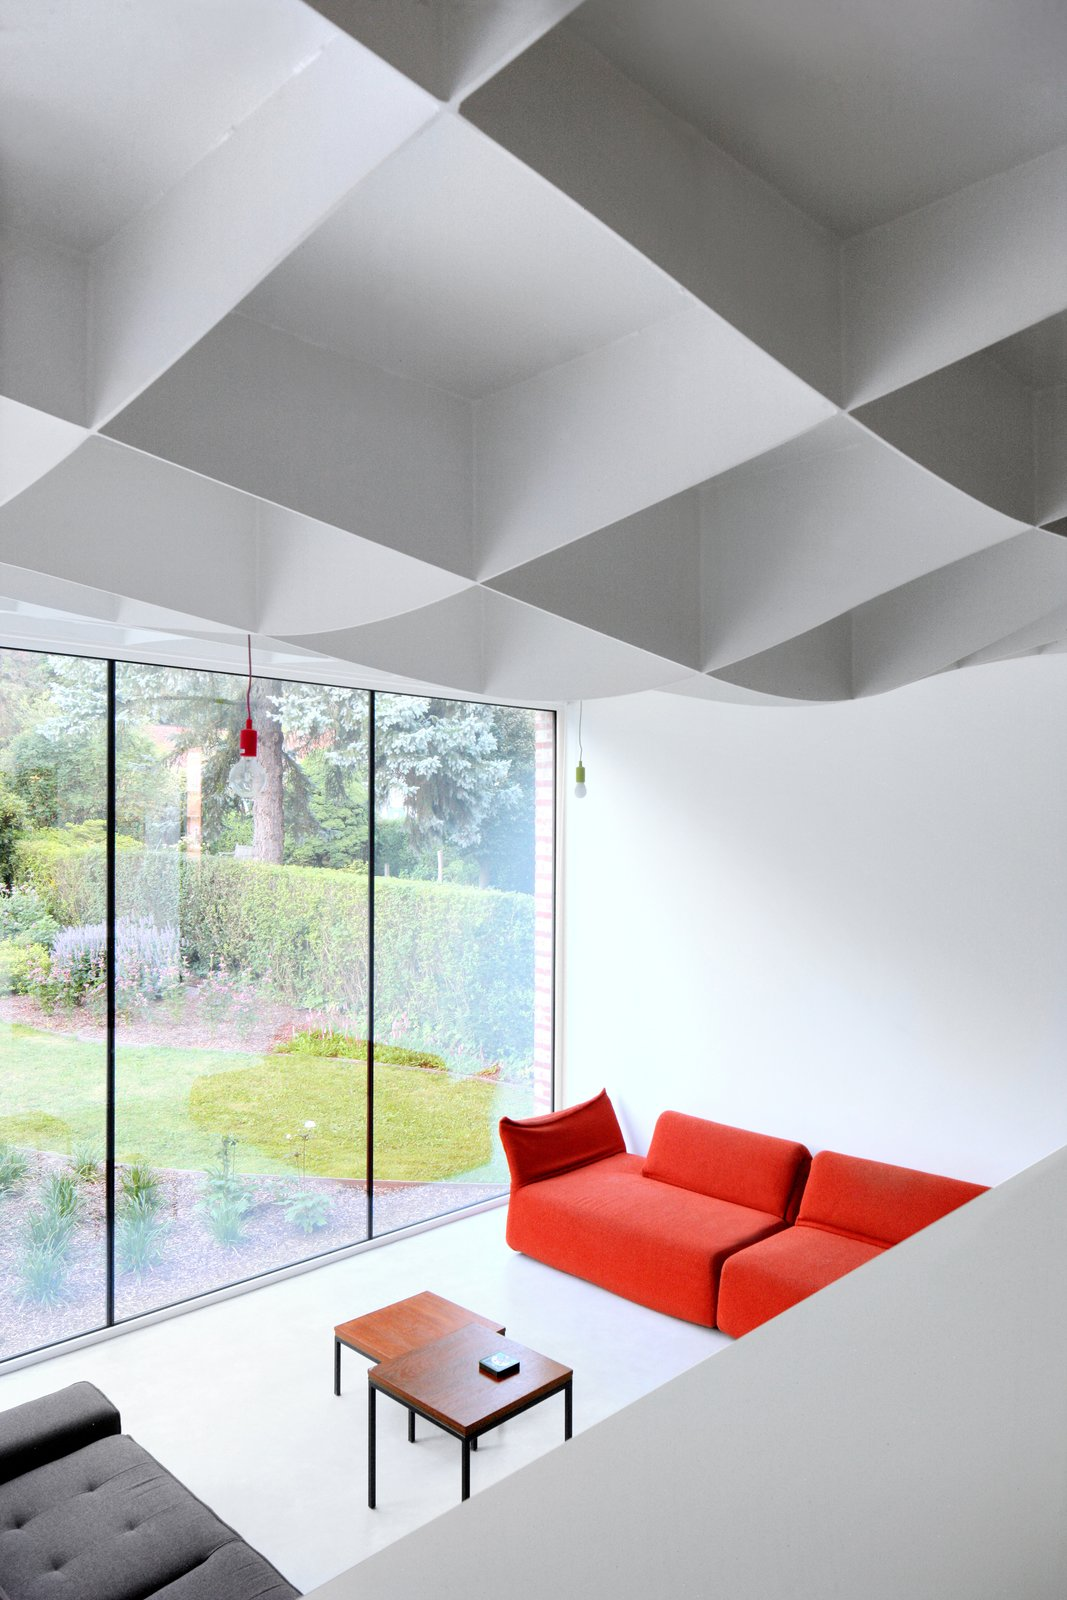 This Villa In Belgium Has A Crazy Prefab Ceiling That Looks Like Wave Ray Williams